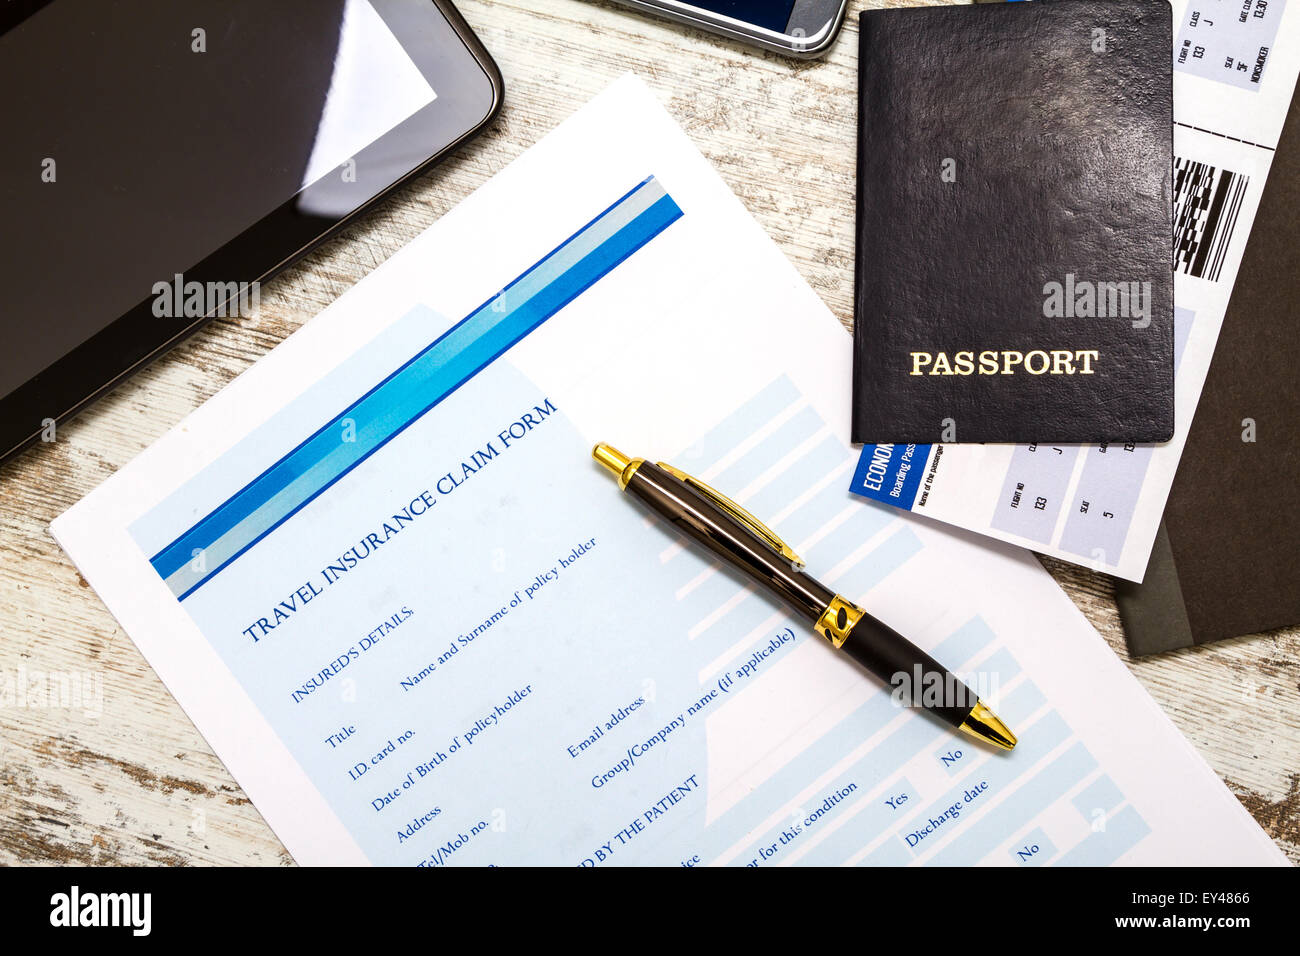 Travel insurance application form with a boarding pass and a passport - Stock Image